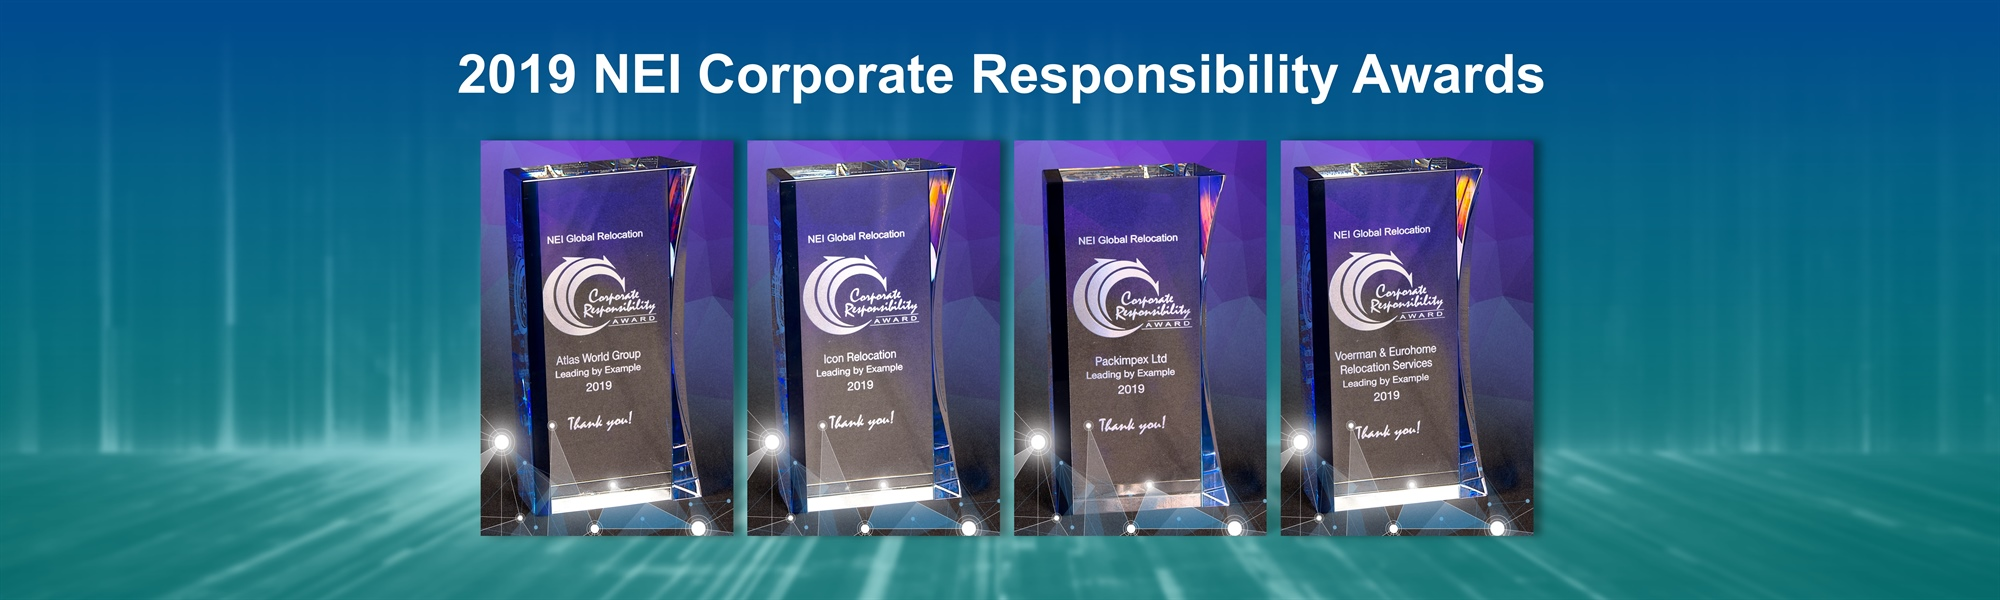 NEI Presents Corporate Responsibility Awards to Four Companies